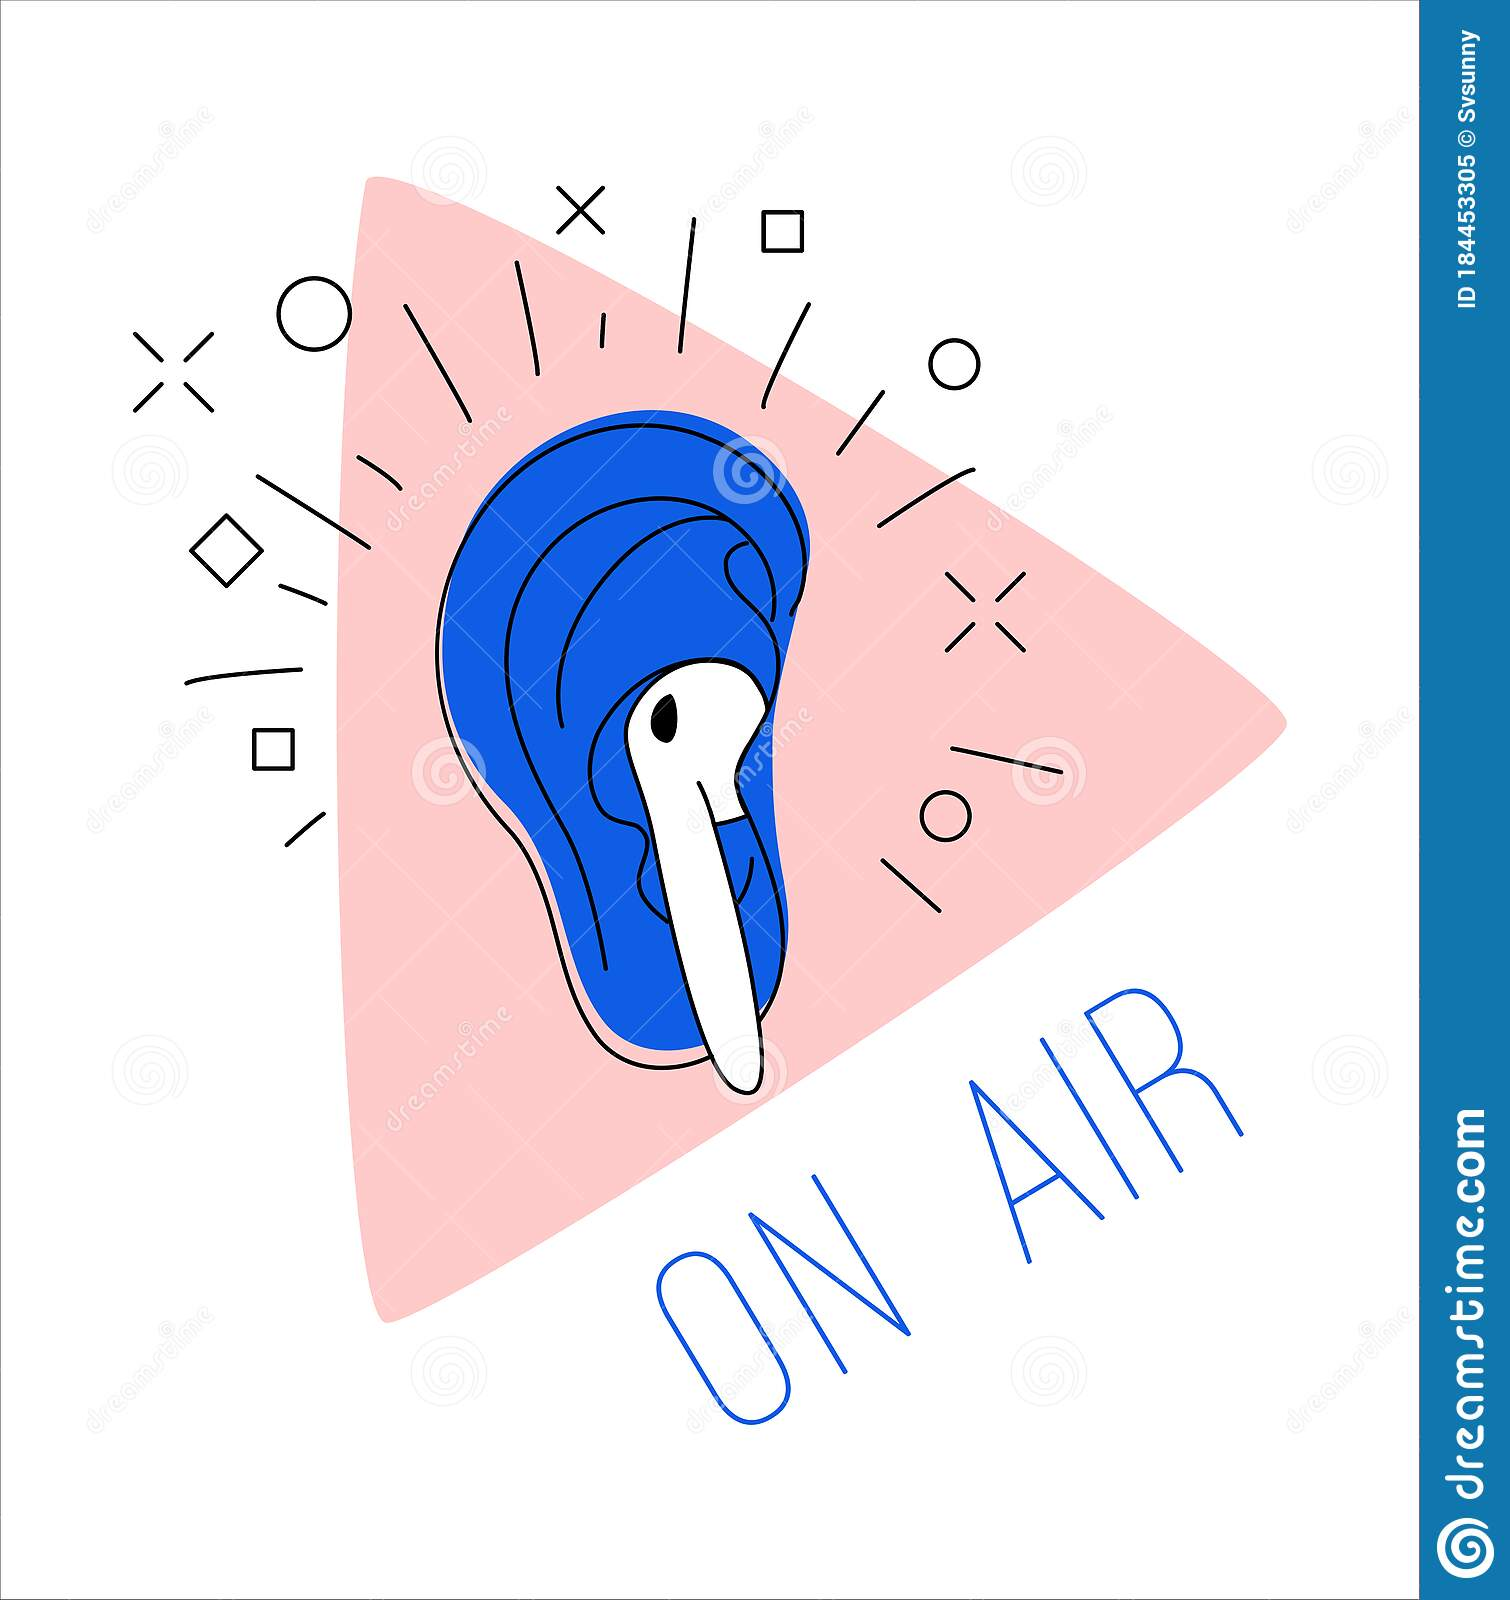 Logo Podcast Radio Broadcast Ear Earphone Pink Play Button Background Stock Vector Illustration Of Drawn Graphic 184453305